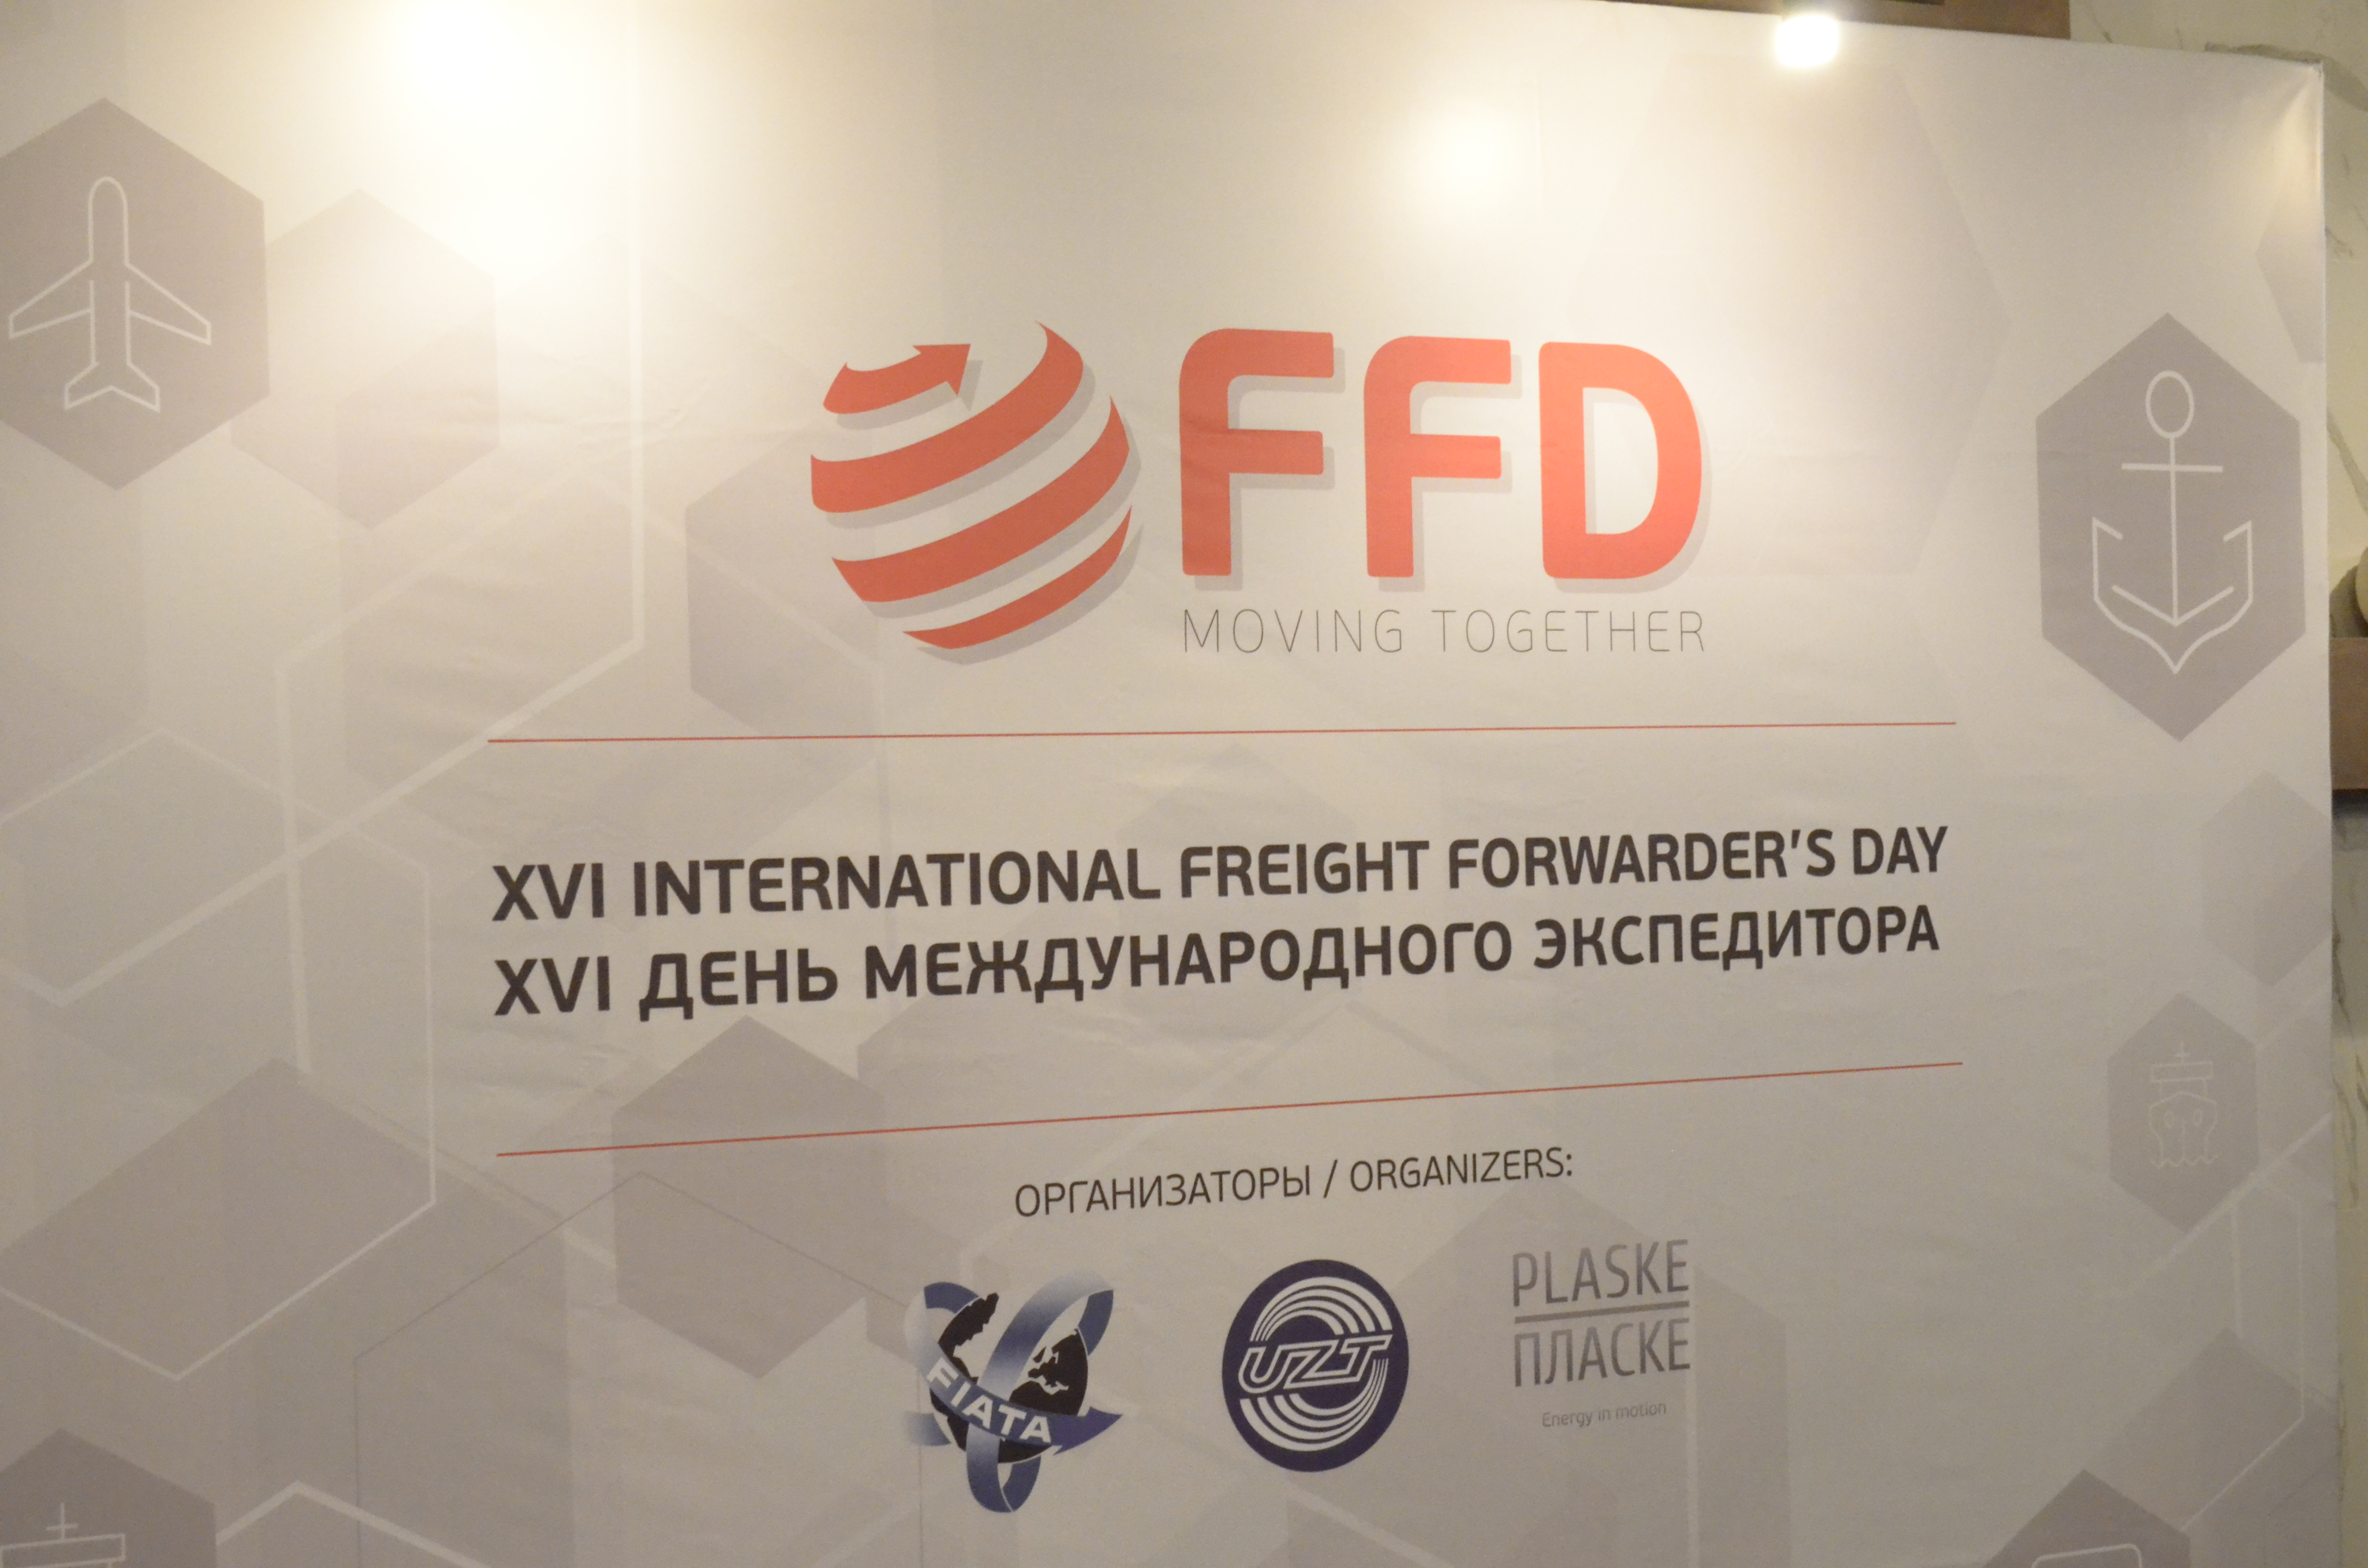 XVI International Freight Forwarder Day